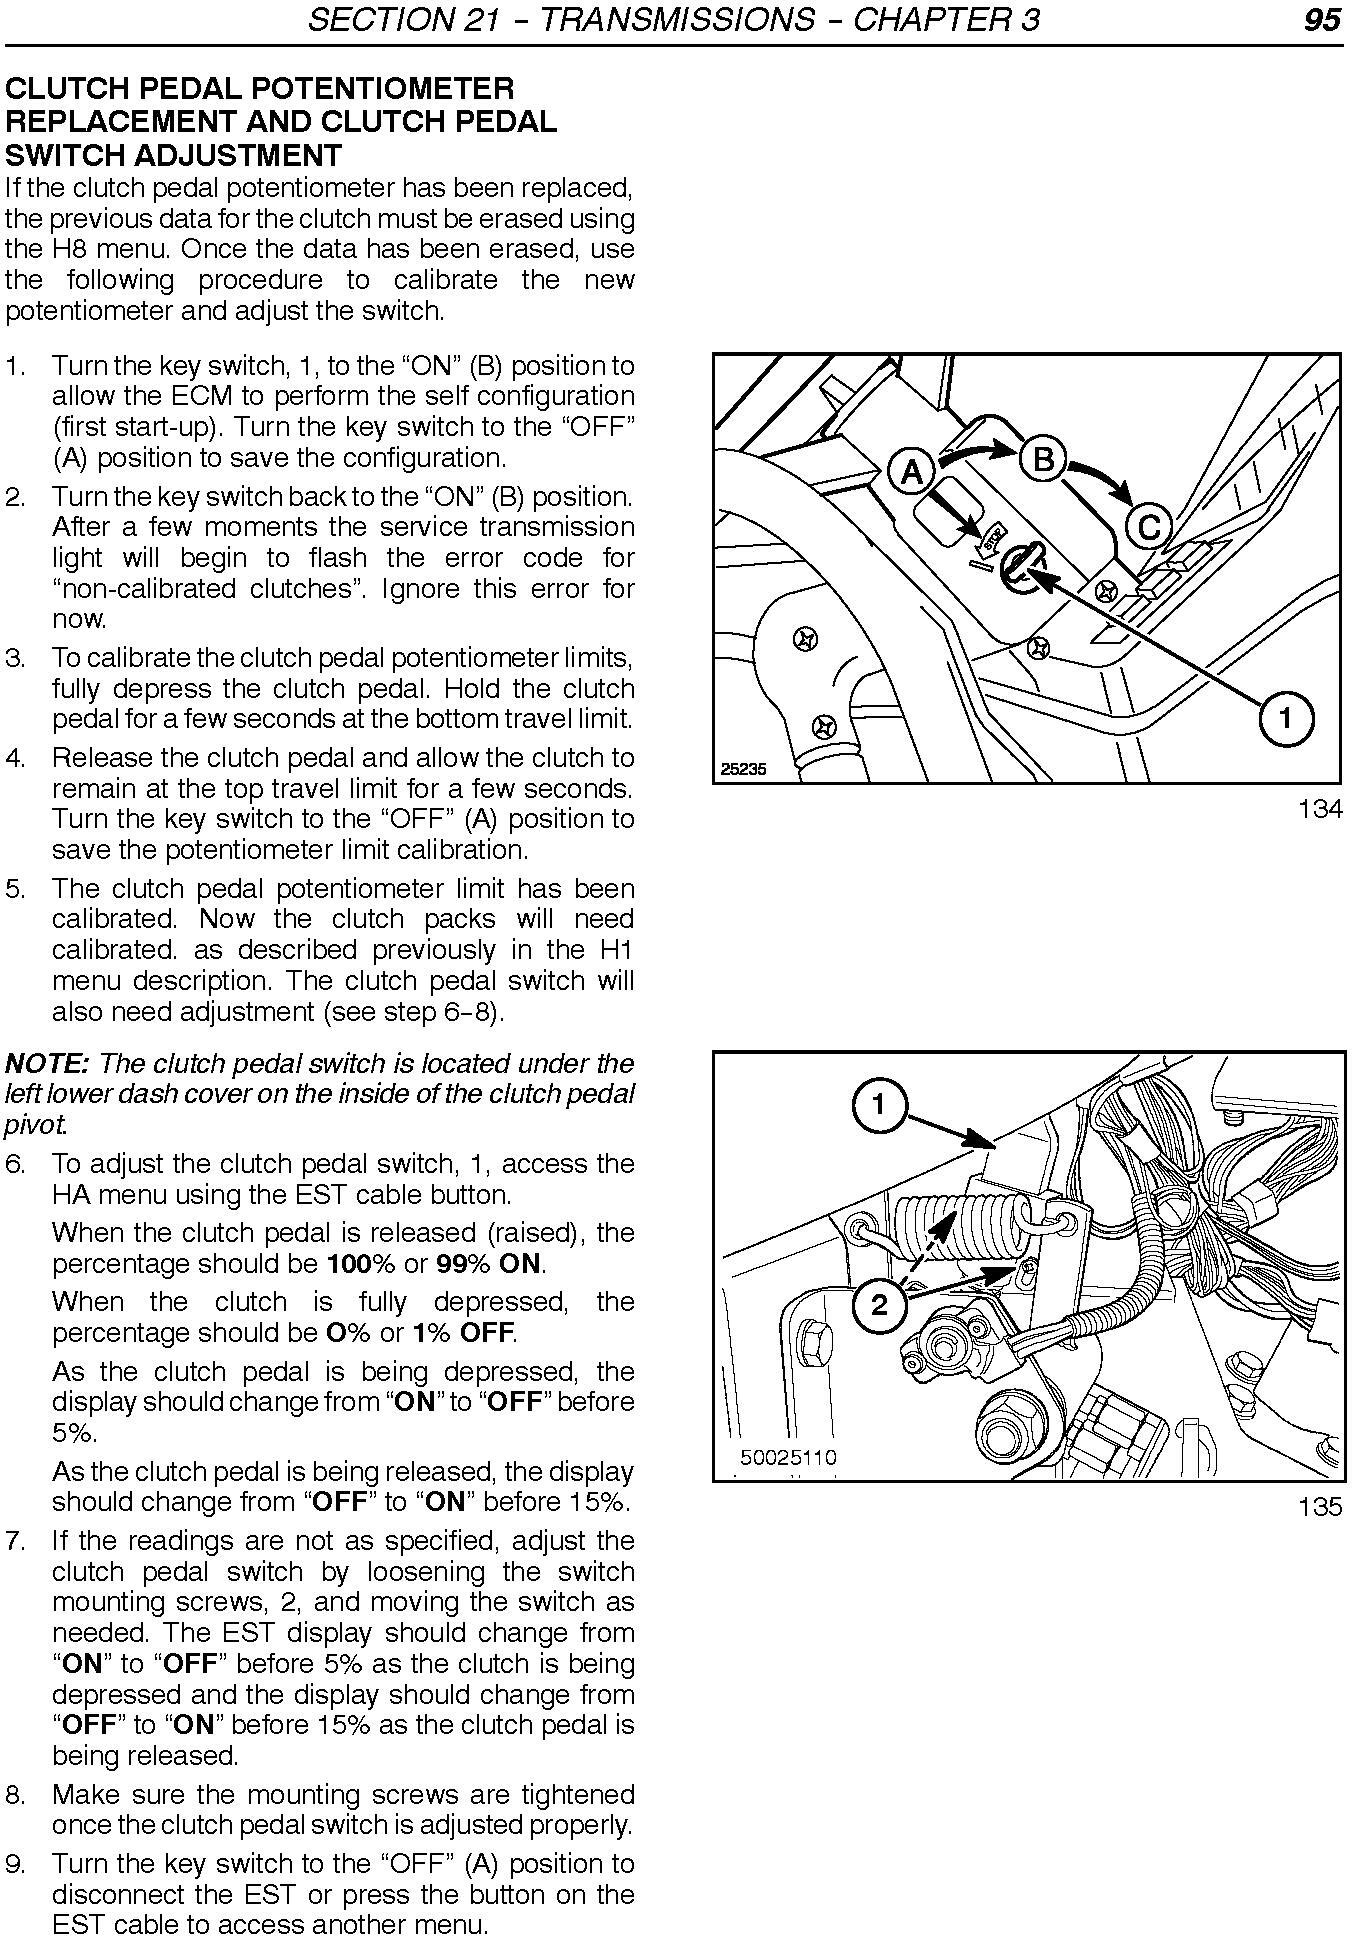 New Holland TN55D, TN65D, TN70D, TN75D, TN55S, TN65S, TN70S, TN75S Tractor Service Manual - 1